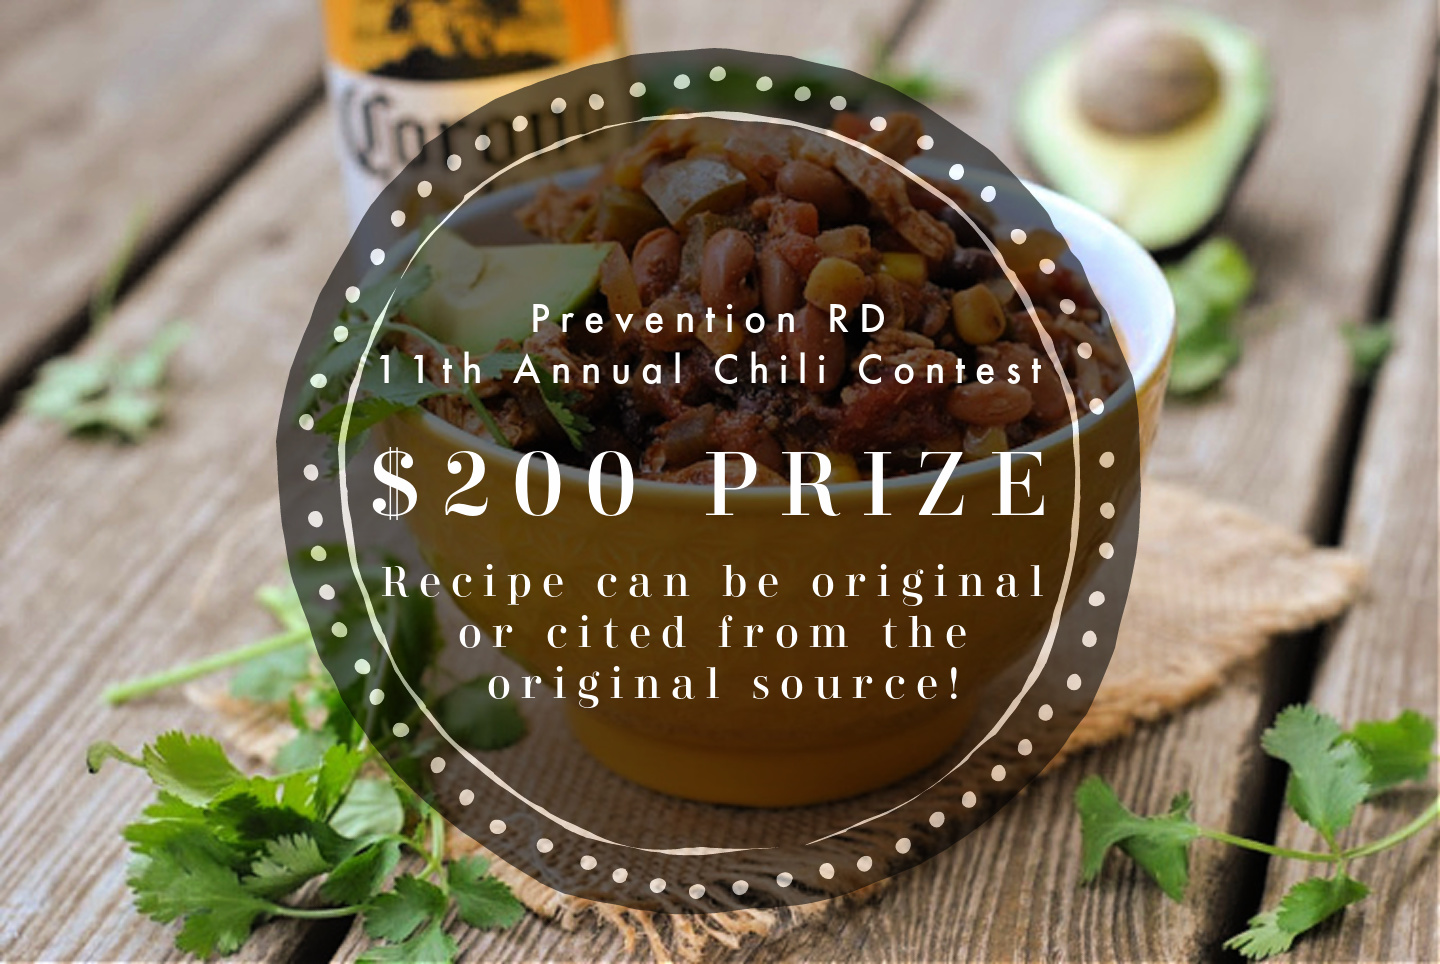 11th Annual Chili Contest — Now Accepting Entries! via @preventionrd